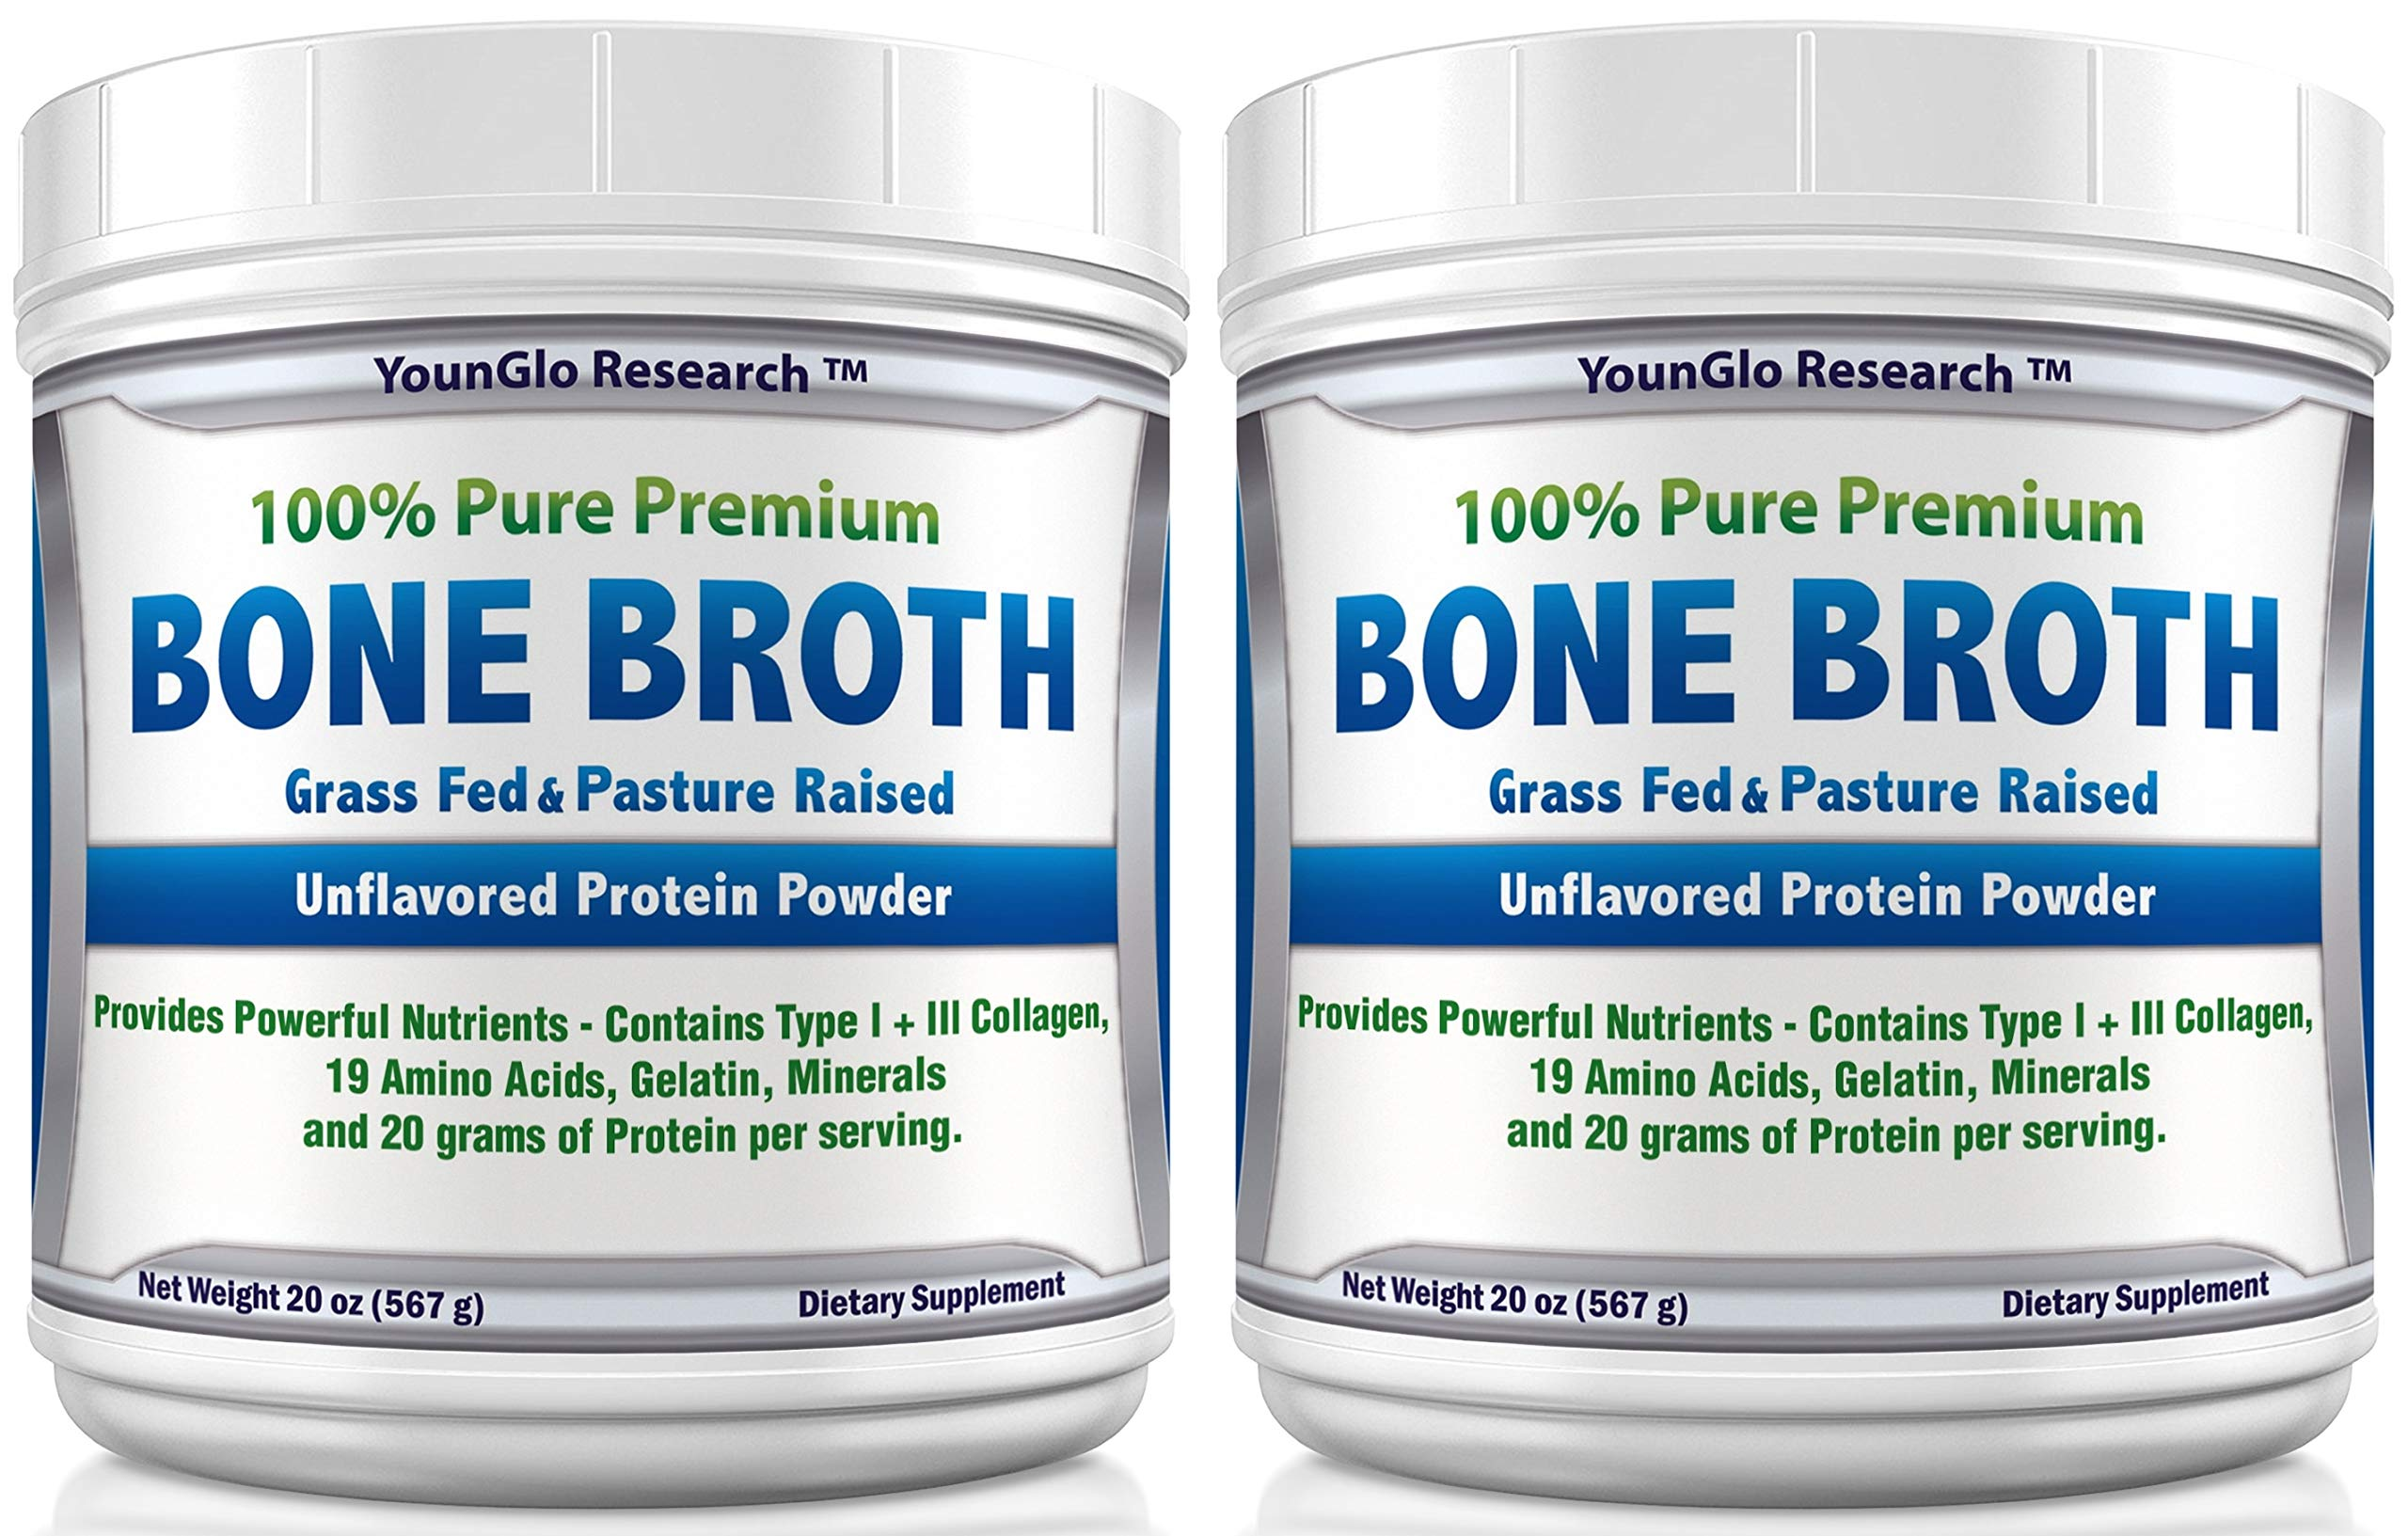 Bone Broth Protein Powder from Grass Fed Beef - 20oz - High in Collagen and Gelatin - Paleo and Keto Friendly - Unflavored (2 Pack) by YounGlo Research